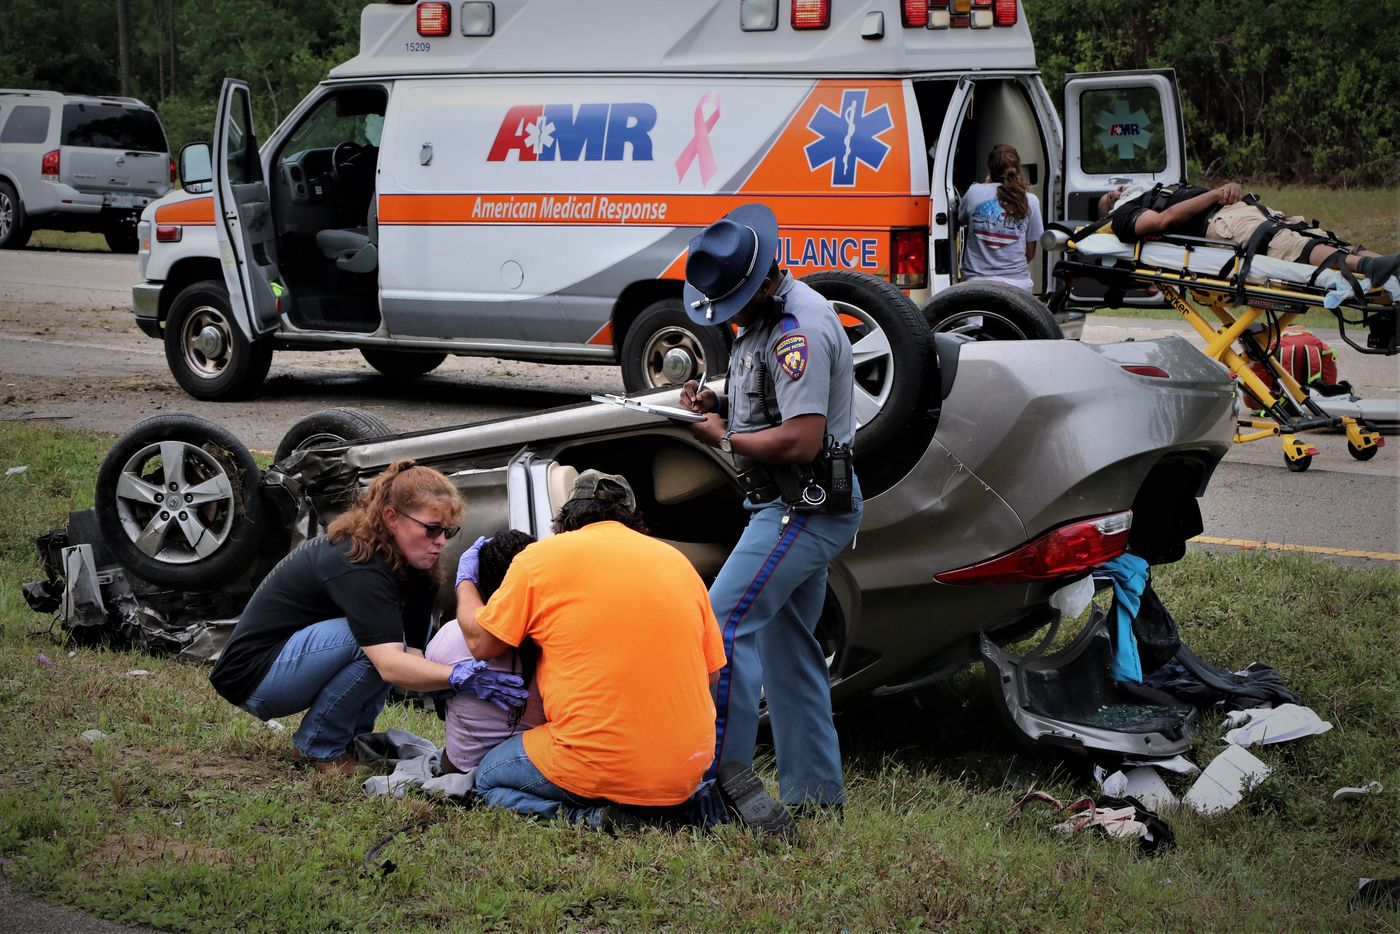 Infant flown to hospital, 3 adults injured after rollover wreck